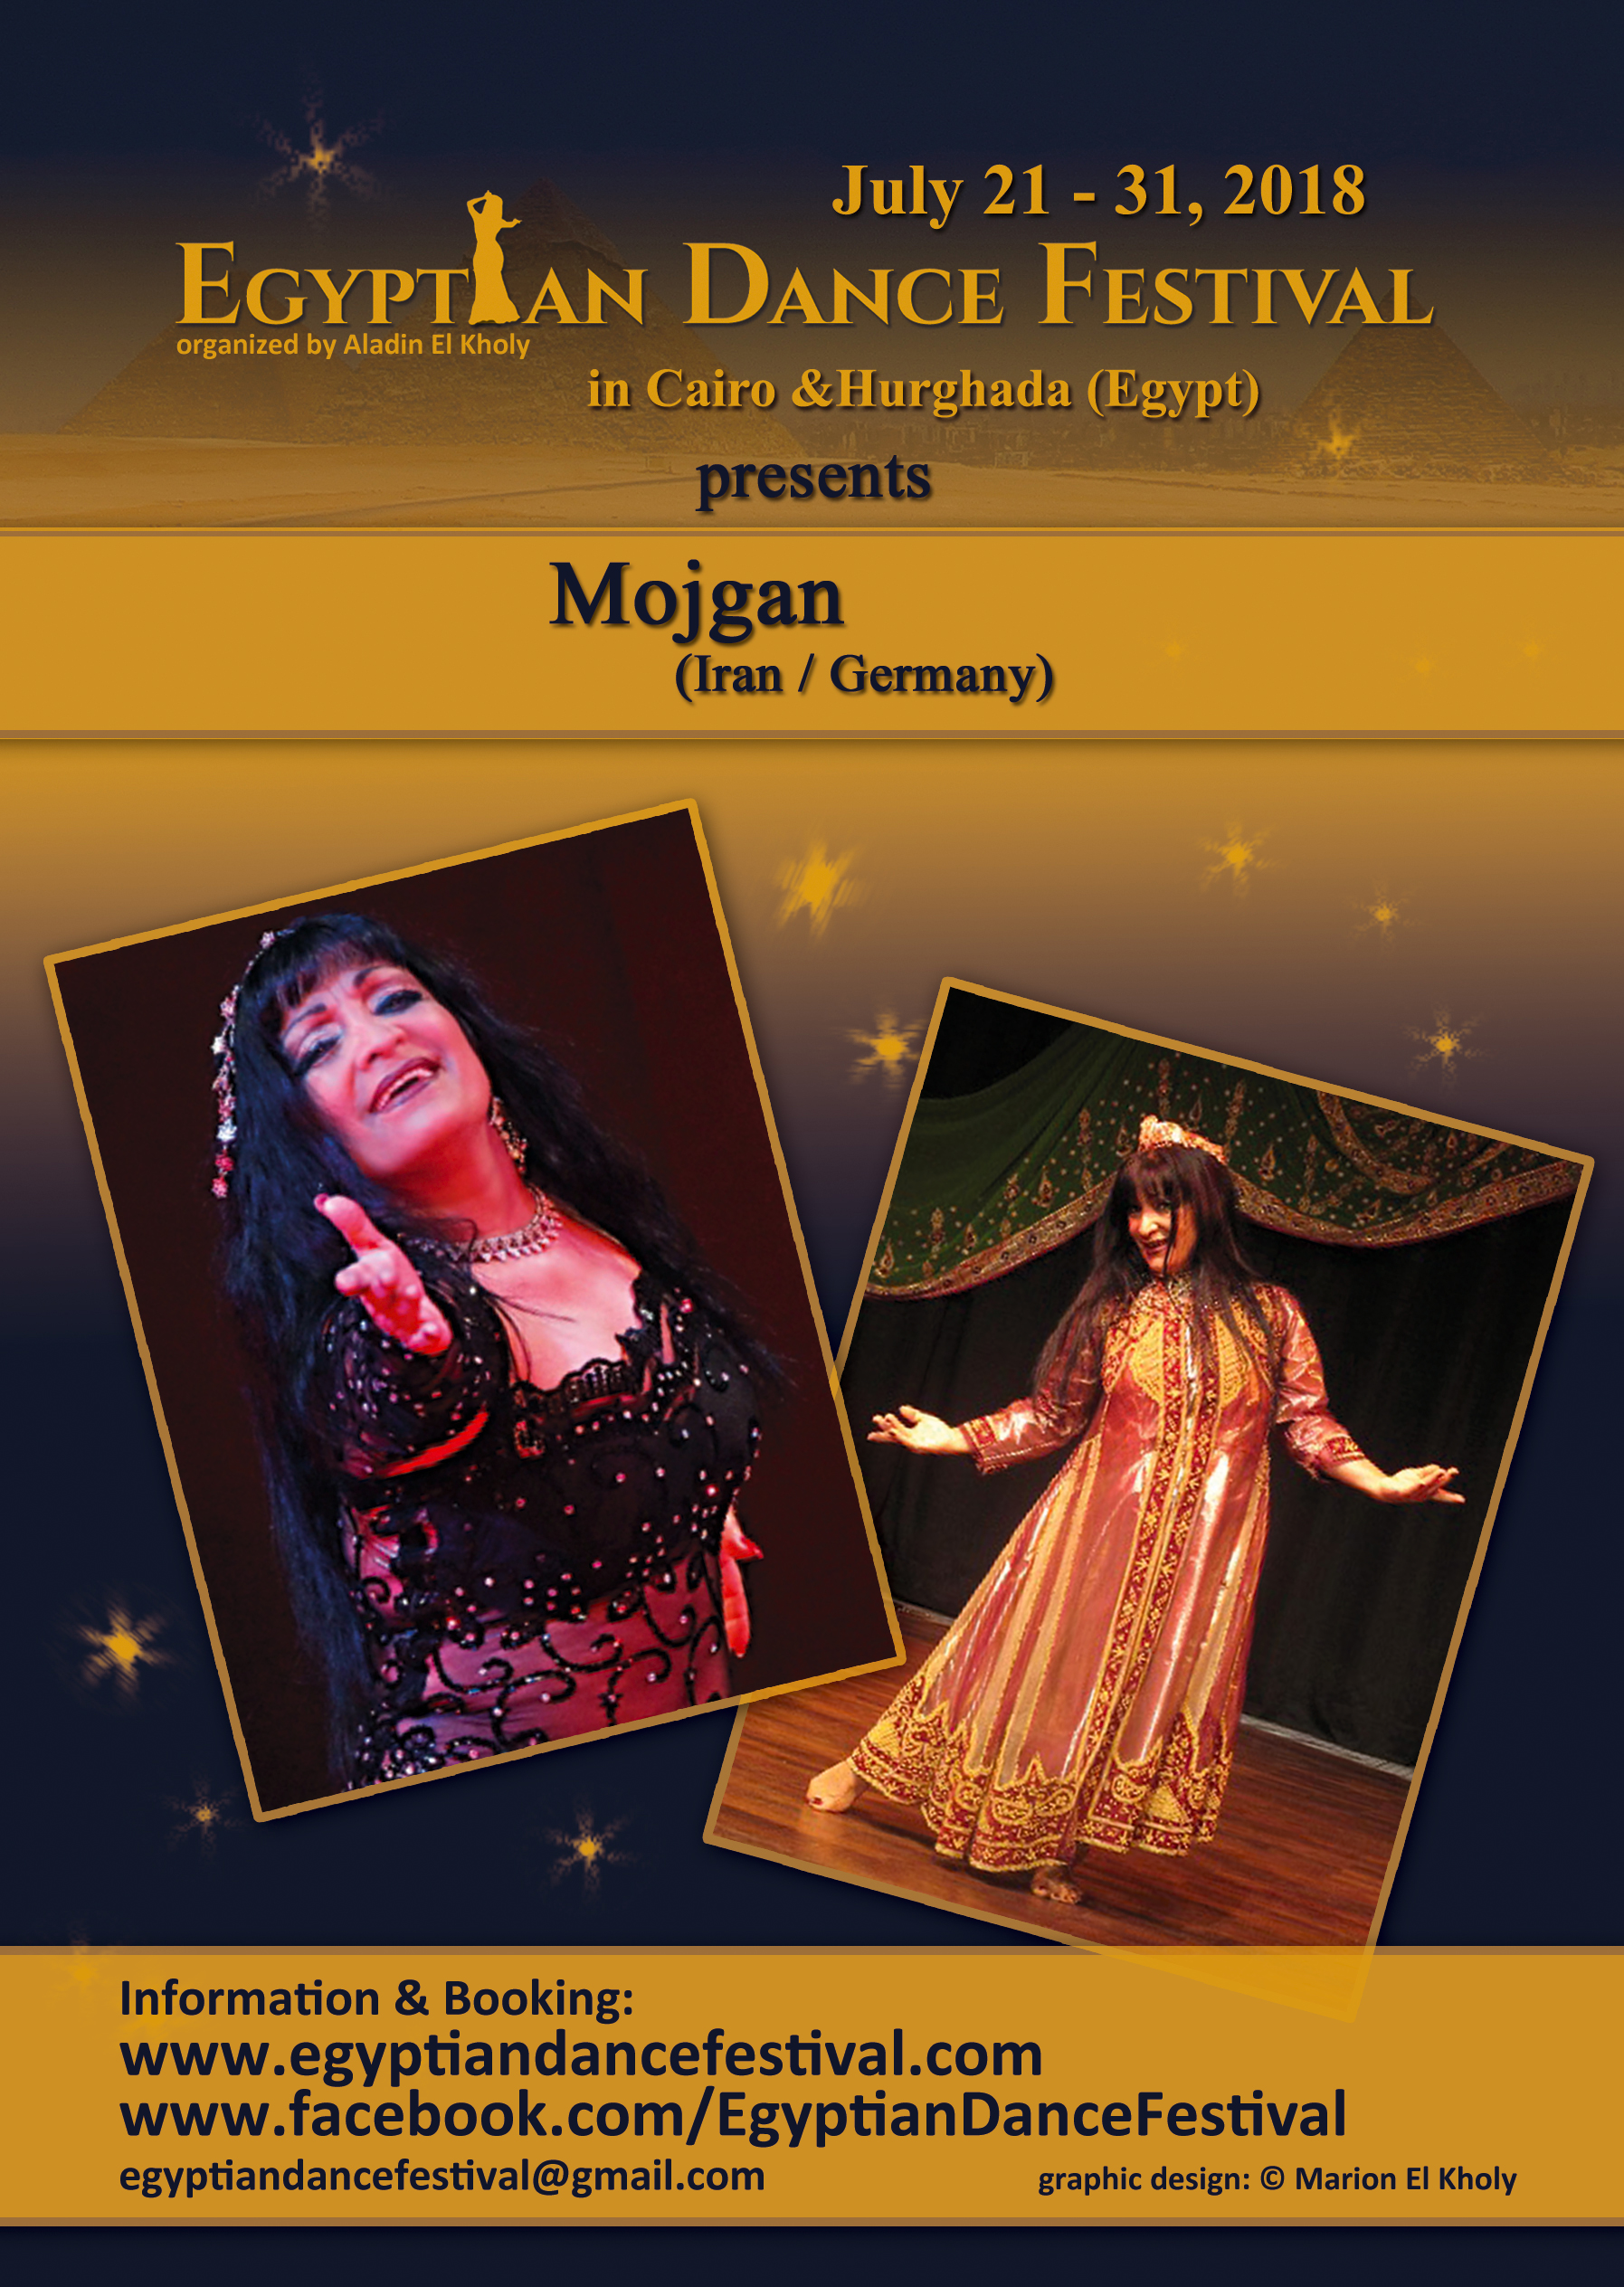 Egyptian Dance Festival 2018 - Mojgan